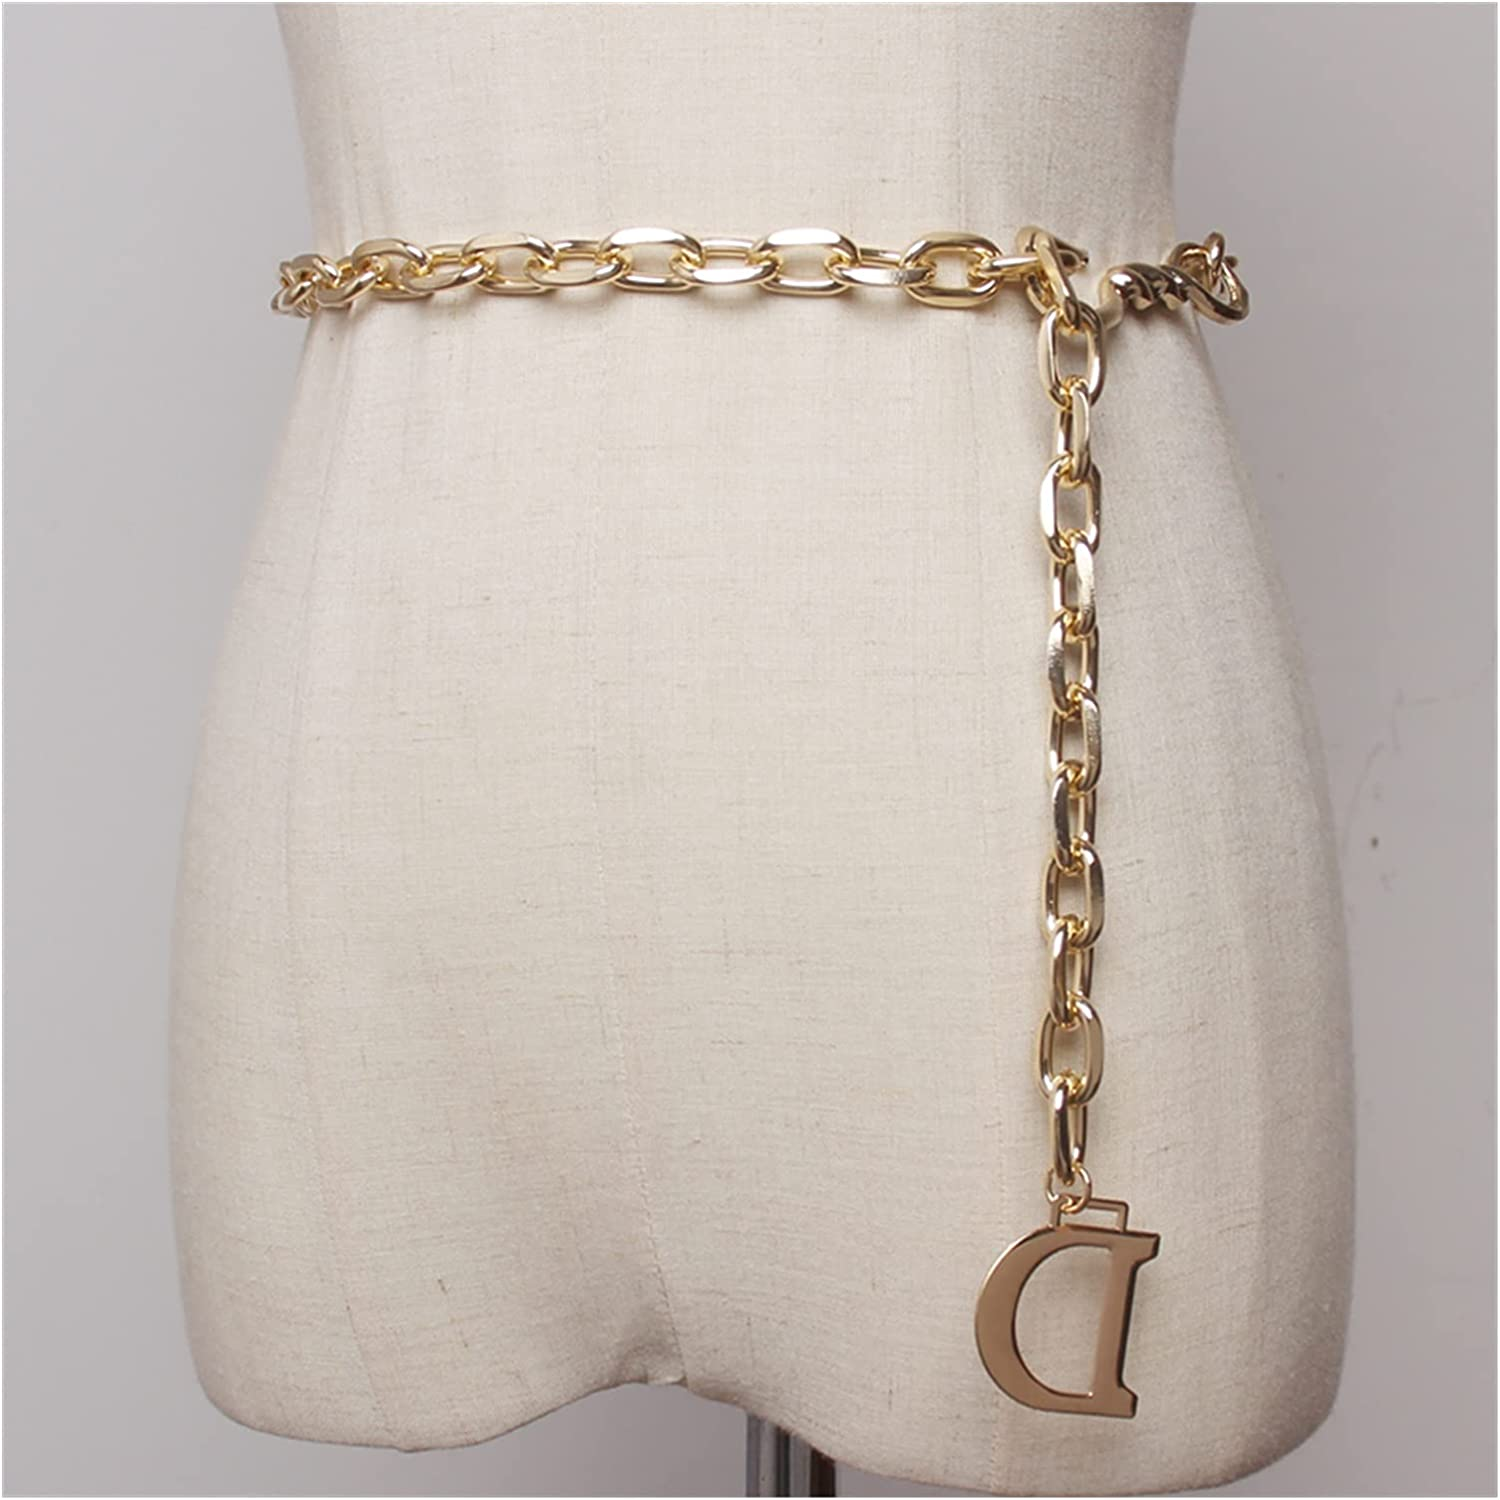 FANGLMY Belt Fashion 2021 spring and summer new Online limited product D Letter Women Thin Chain Metal Waist